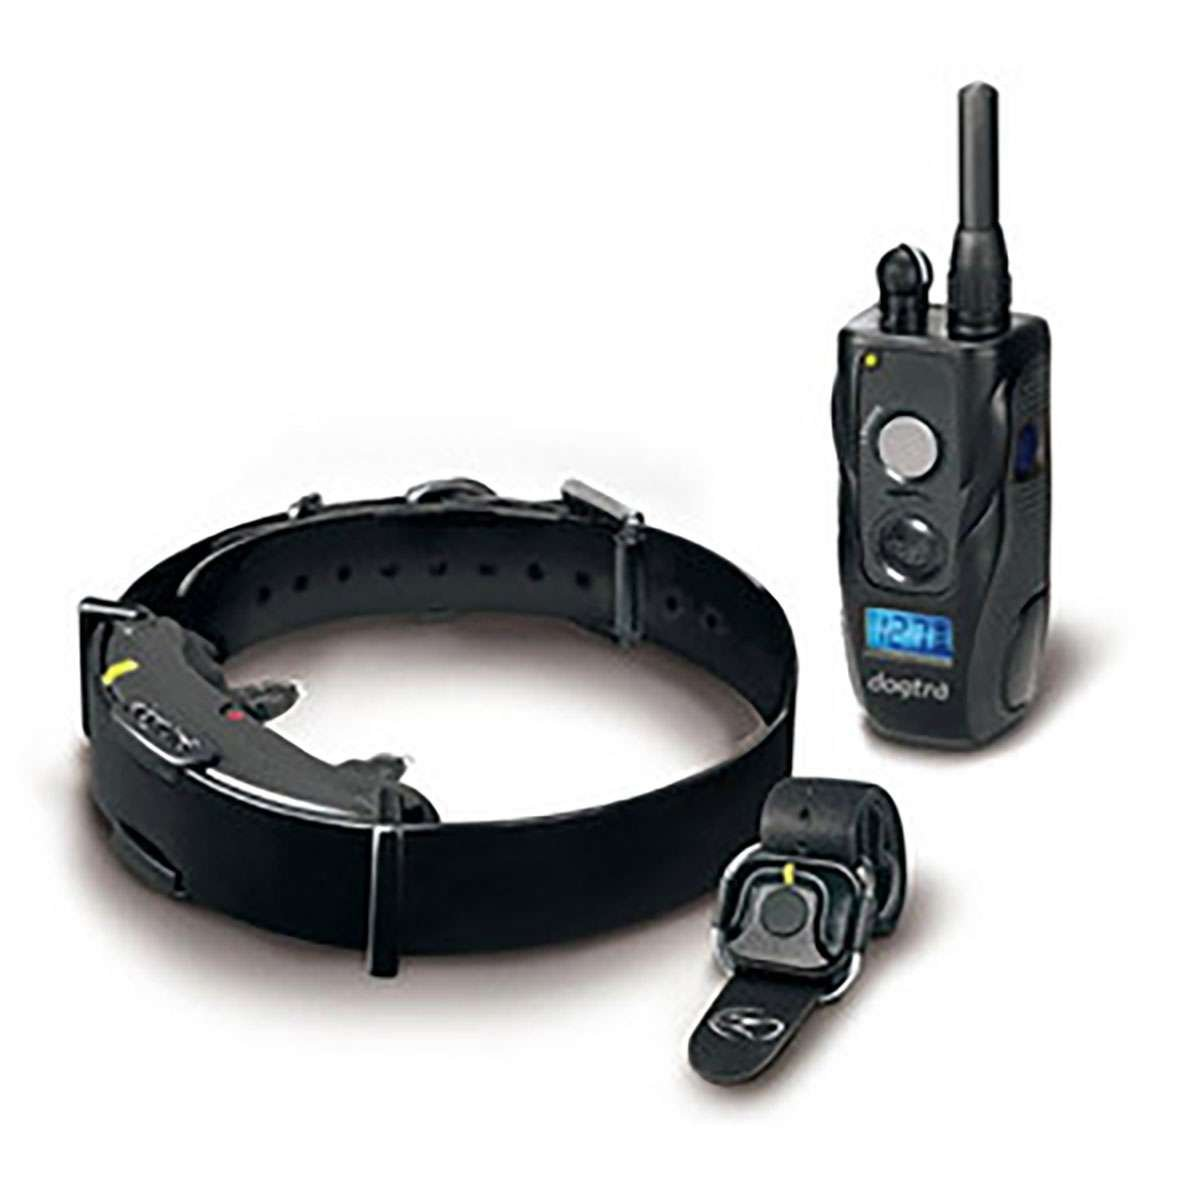 Dogtra ARC Hands free Collar with Free Nite Ize Pet Lit